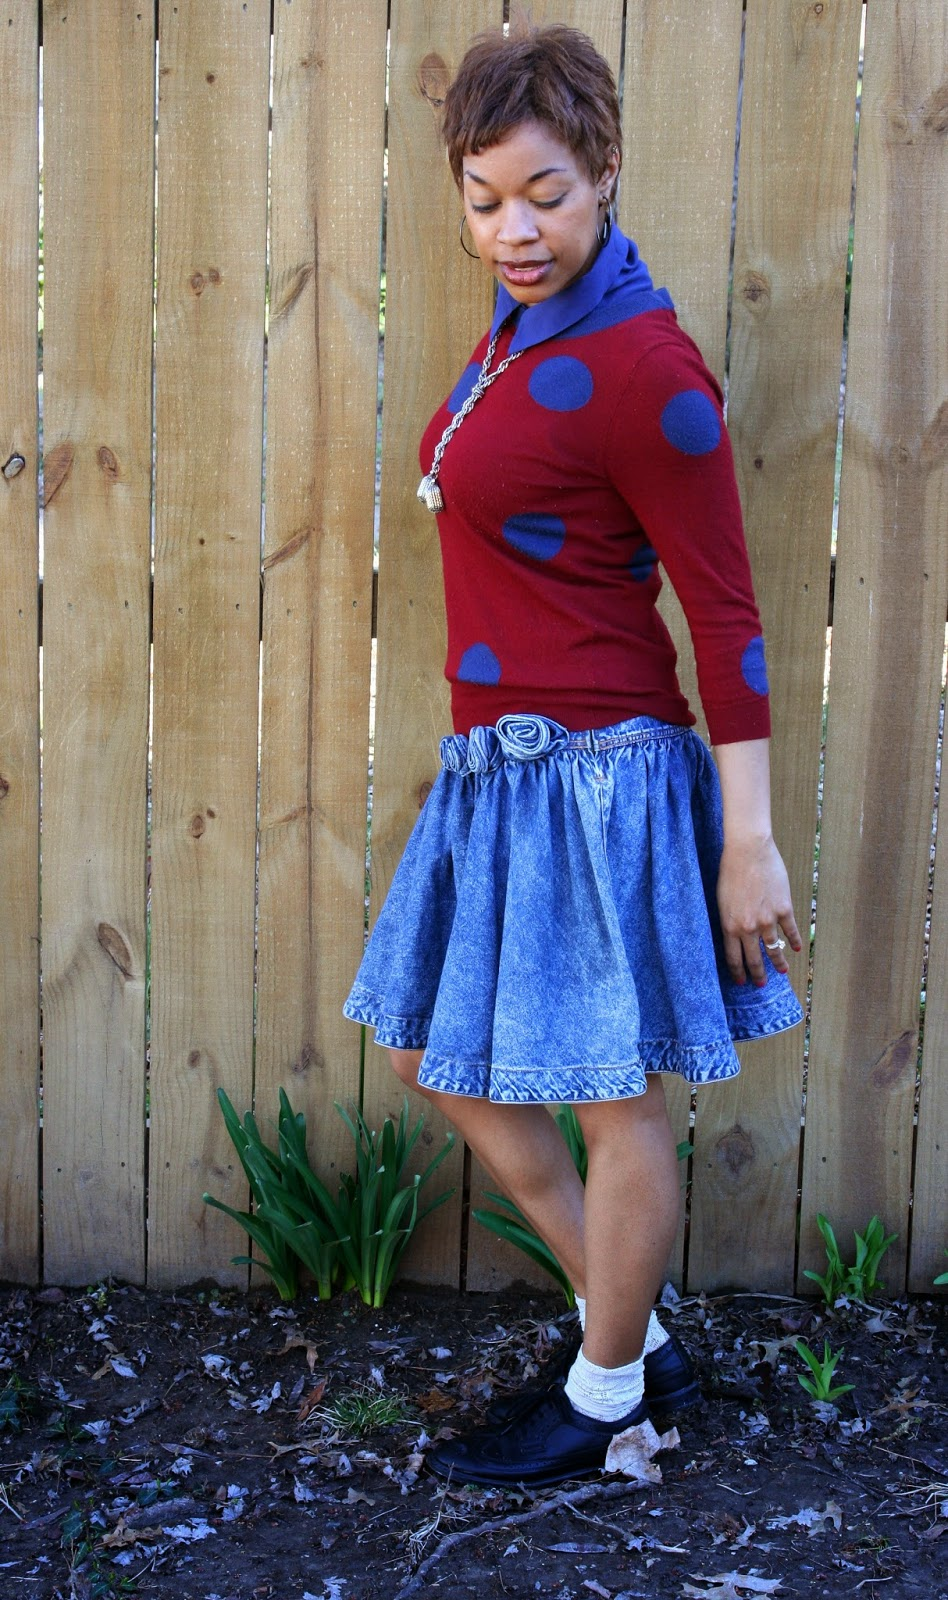 denim skirt and polka-dot sweater